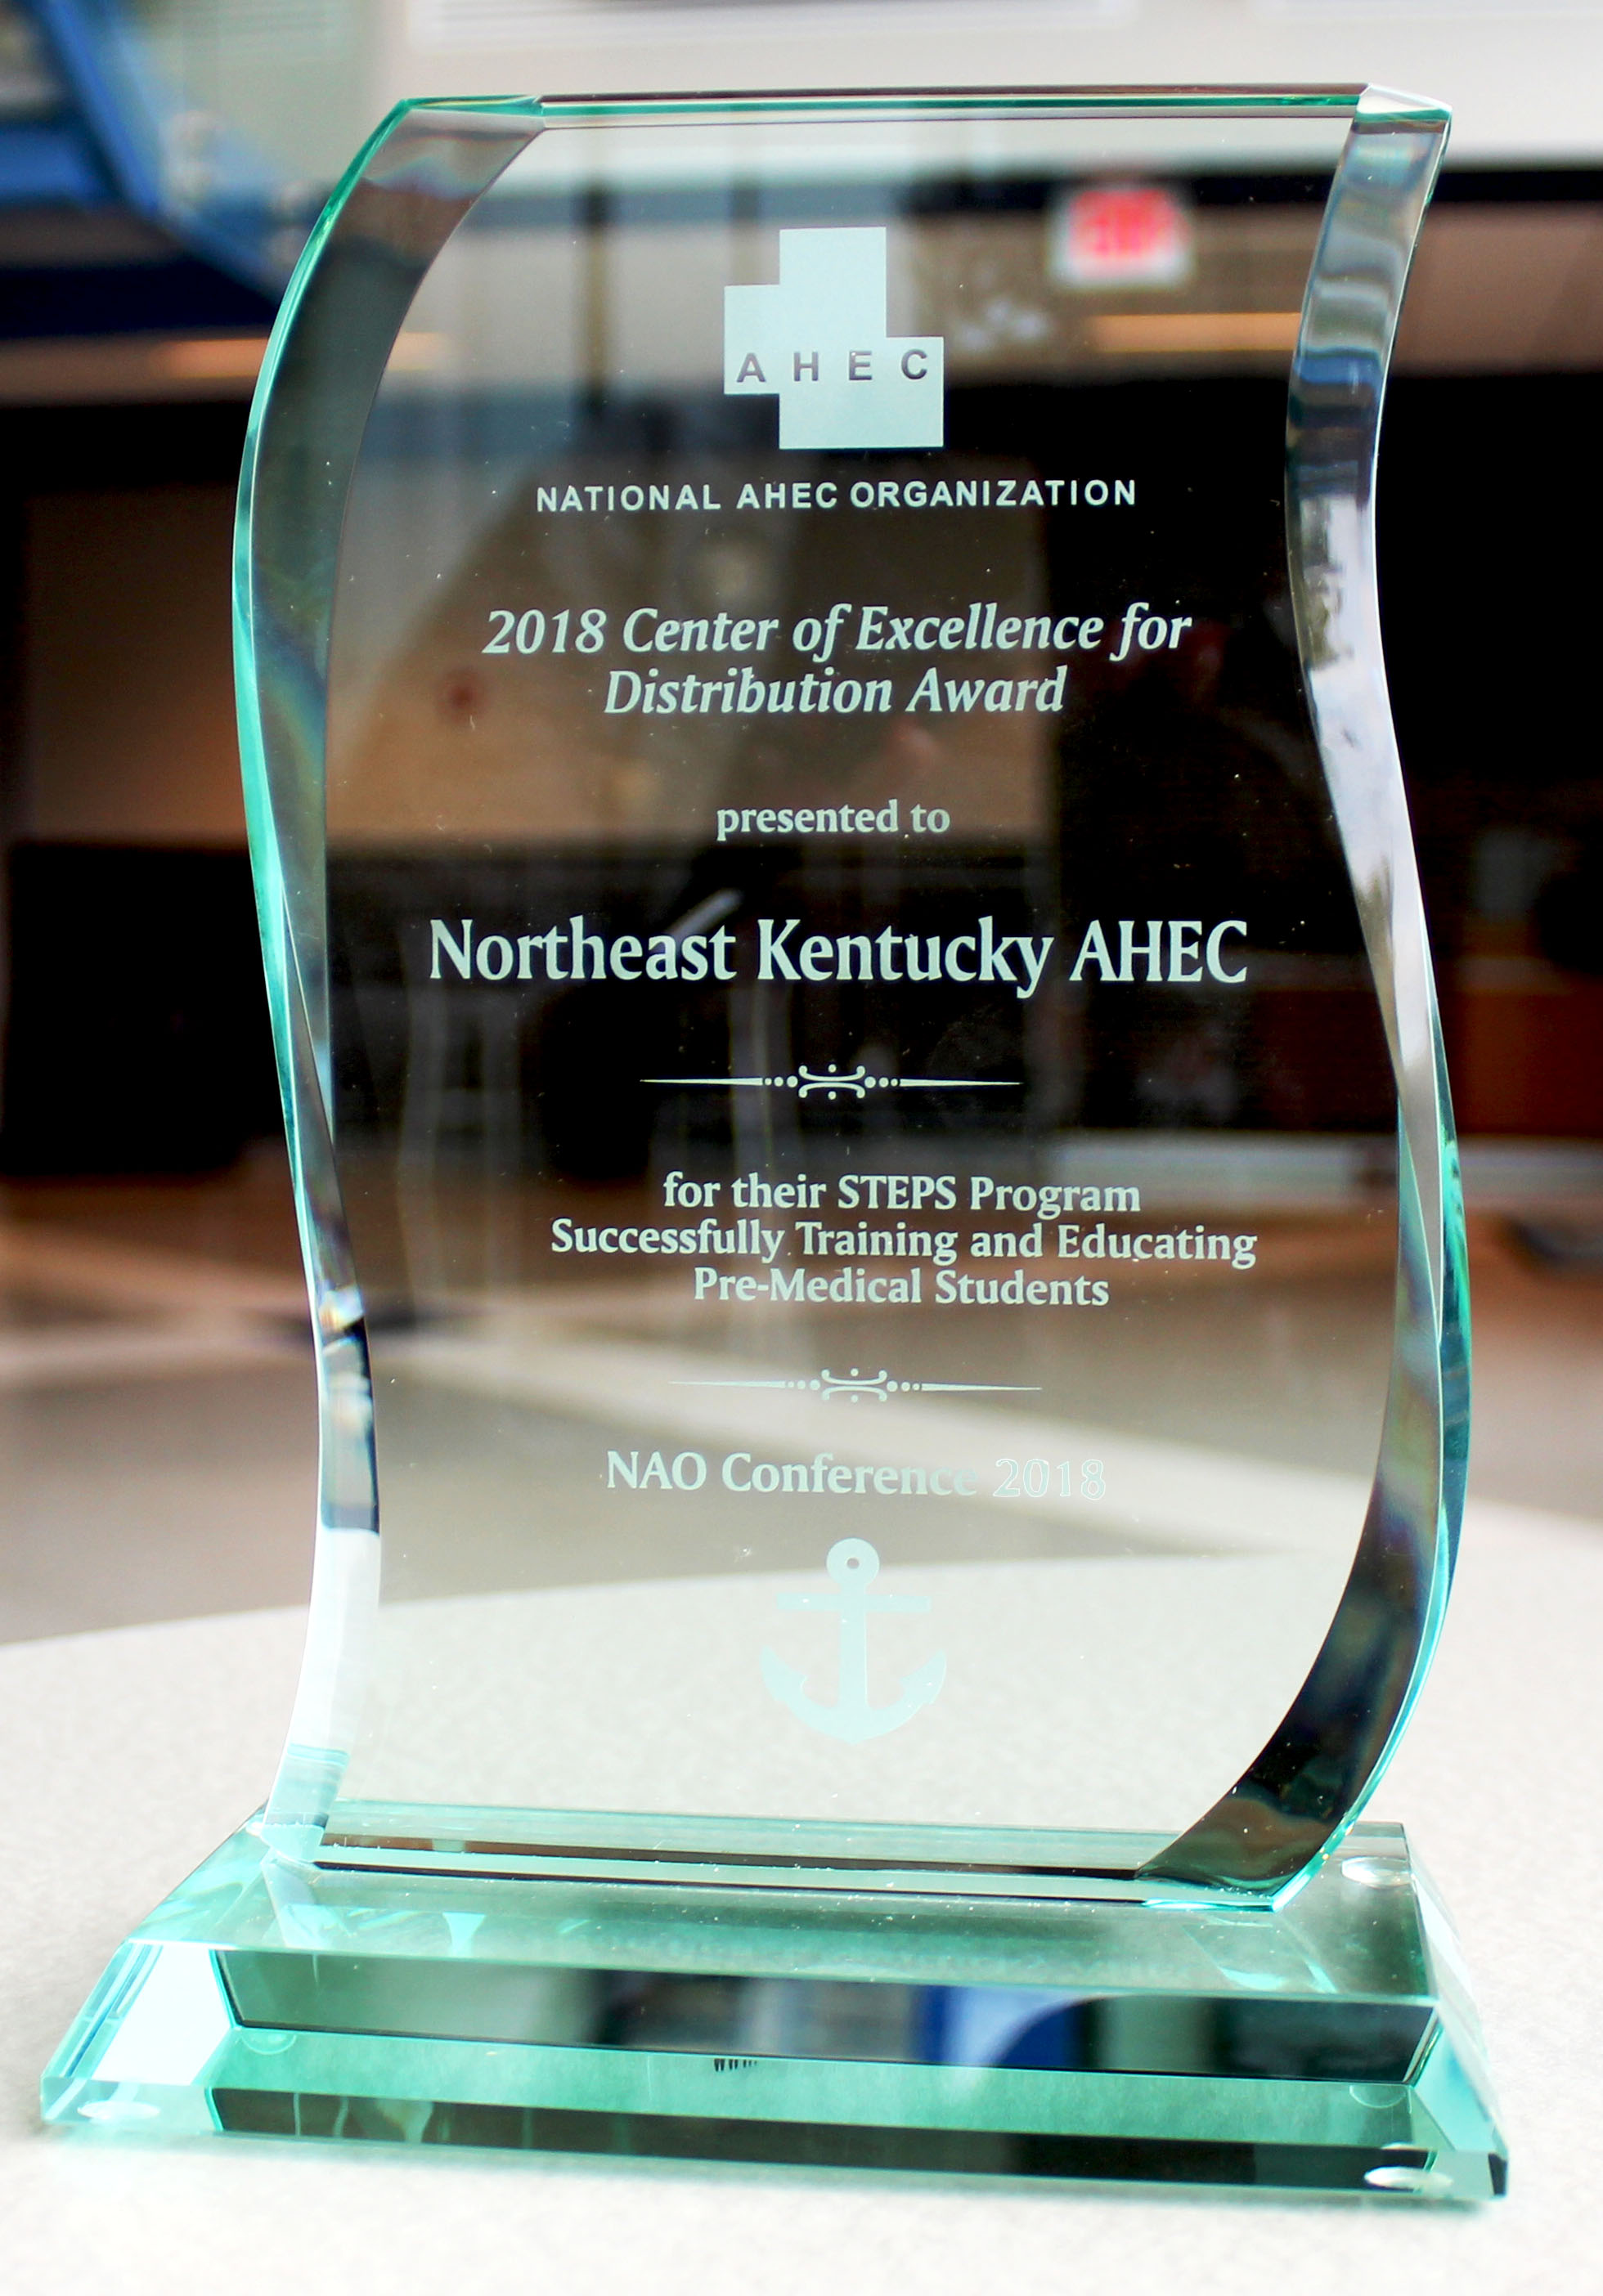 Northeast Kentucky AHEC receives national recognition